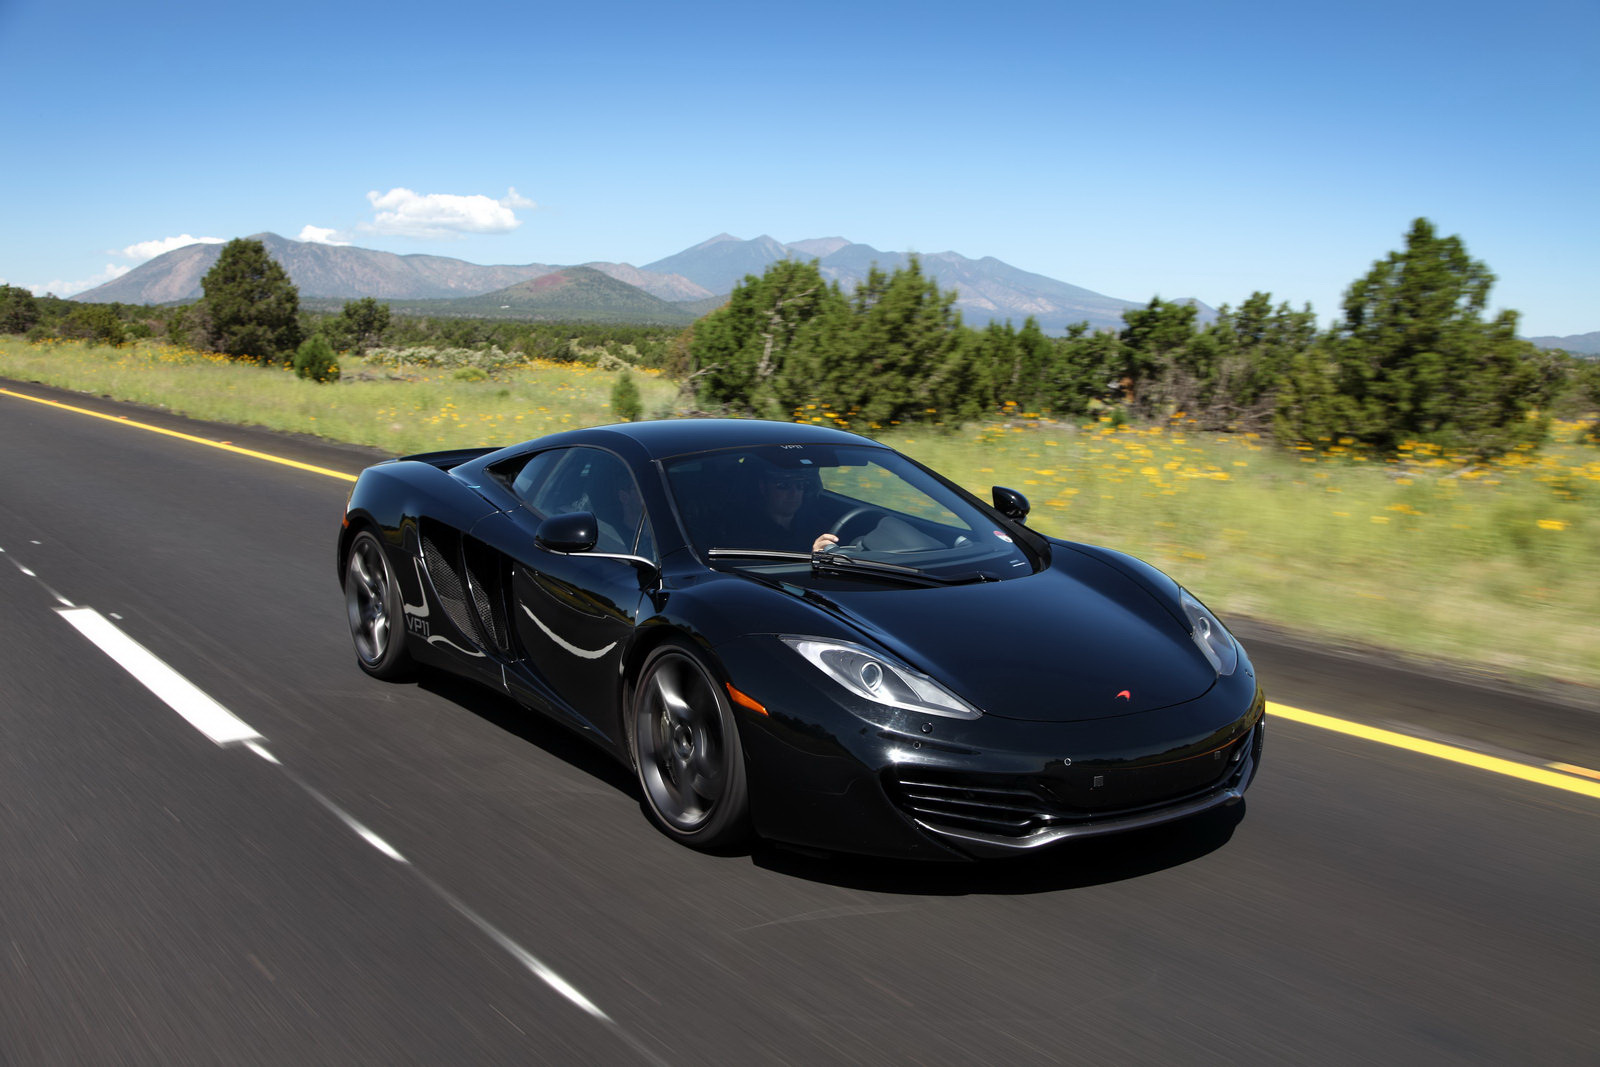 McLaren MP4-12C which Wallpapers Download Wallpaper